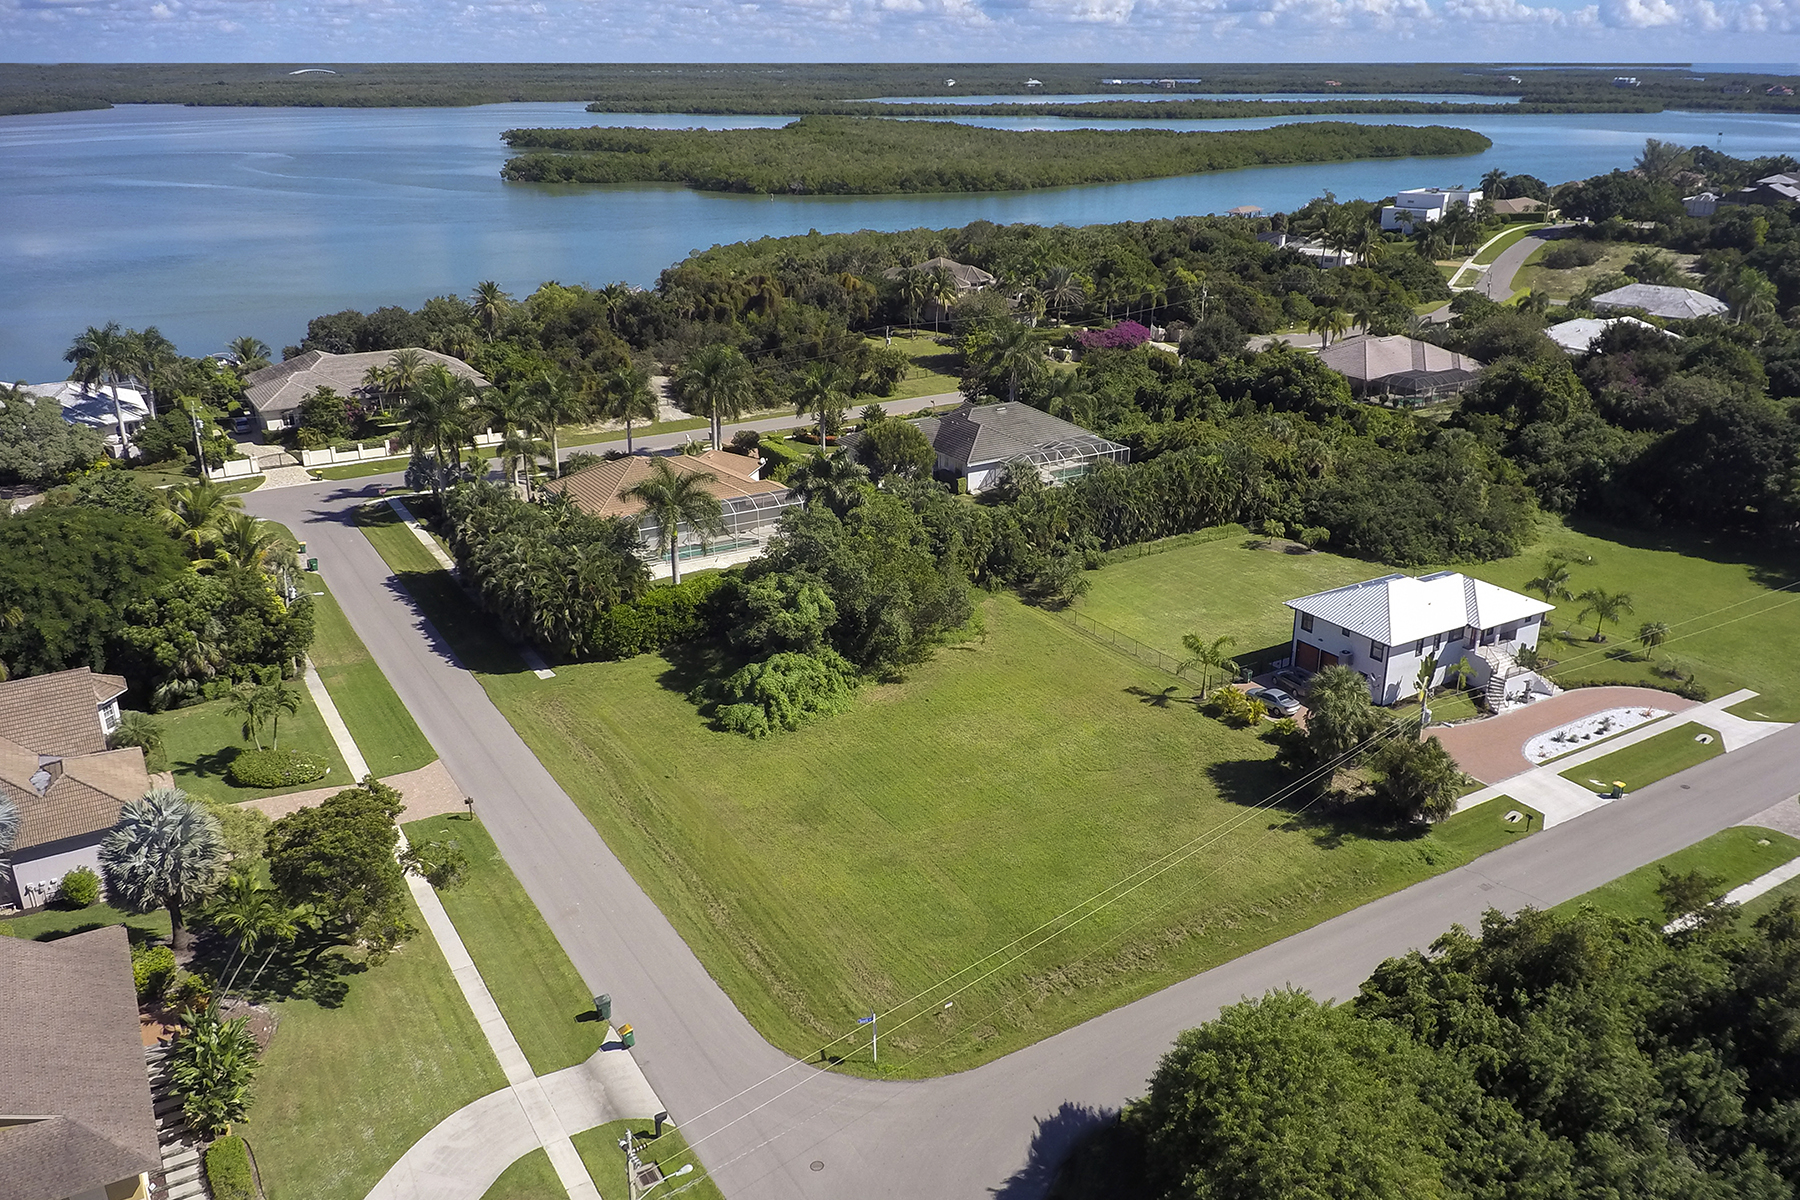 Land for Sale at MARCO ISLAND - SCOTT DRIVE 801 Scott Dr Marco Island, Florida, 34145 United States